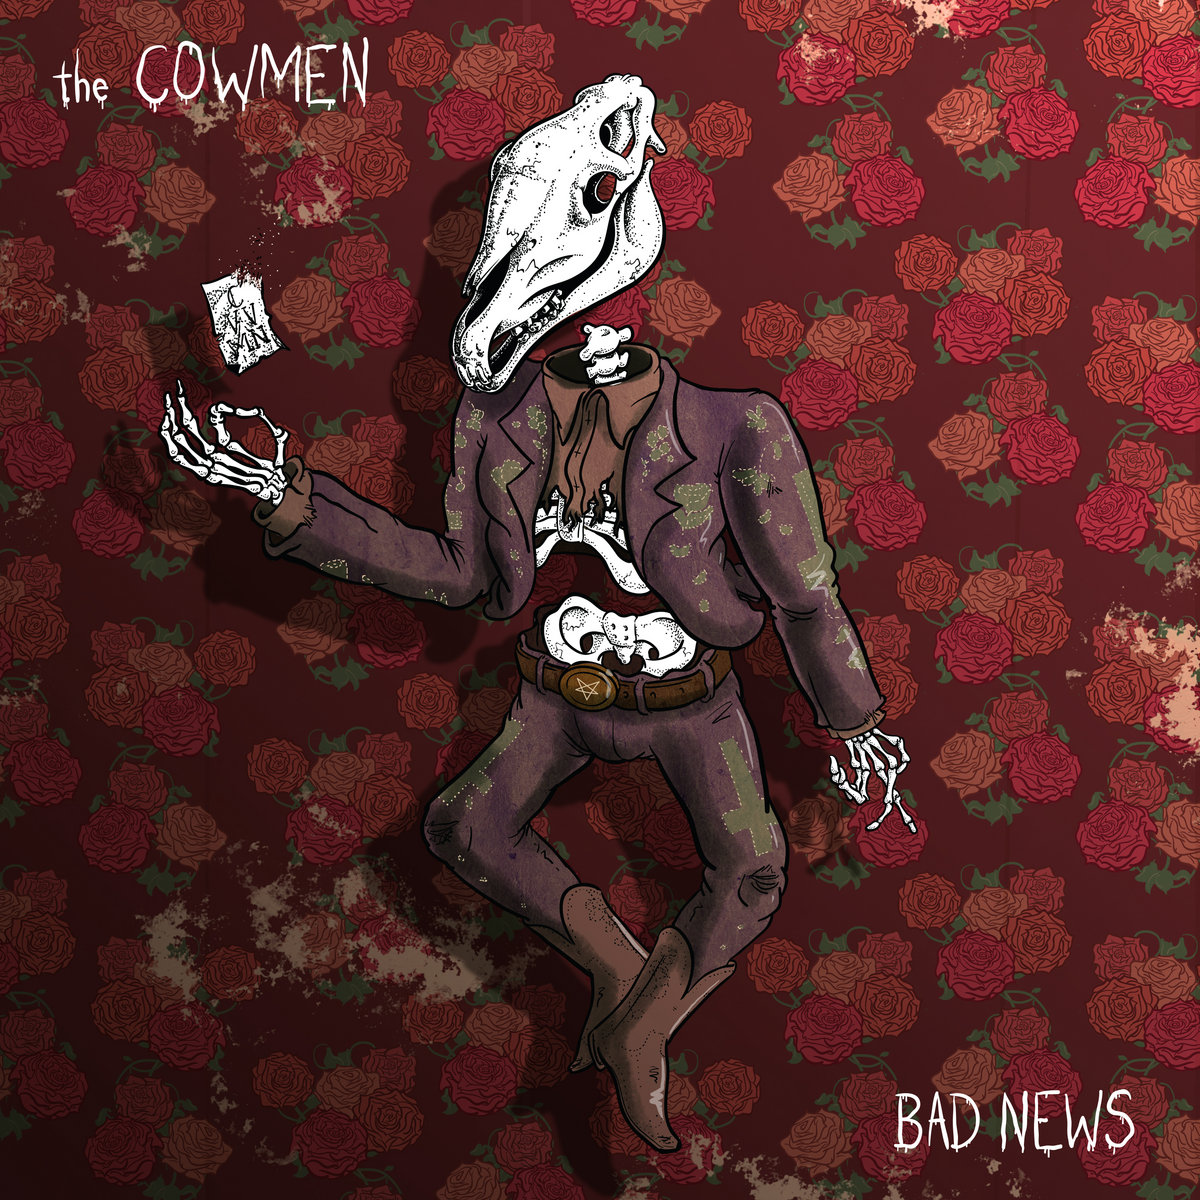 The Cowmen The Cowmen A new version of last.fm is available, to keep everything running smoothly, please reload the site. the cowmen the cowmen